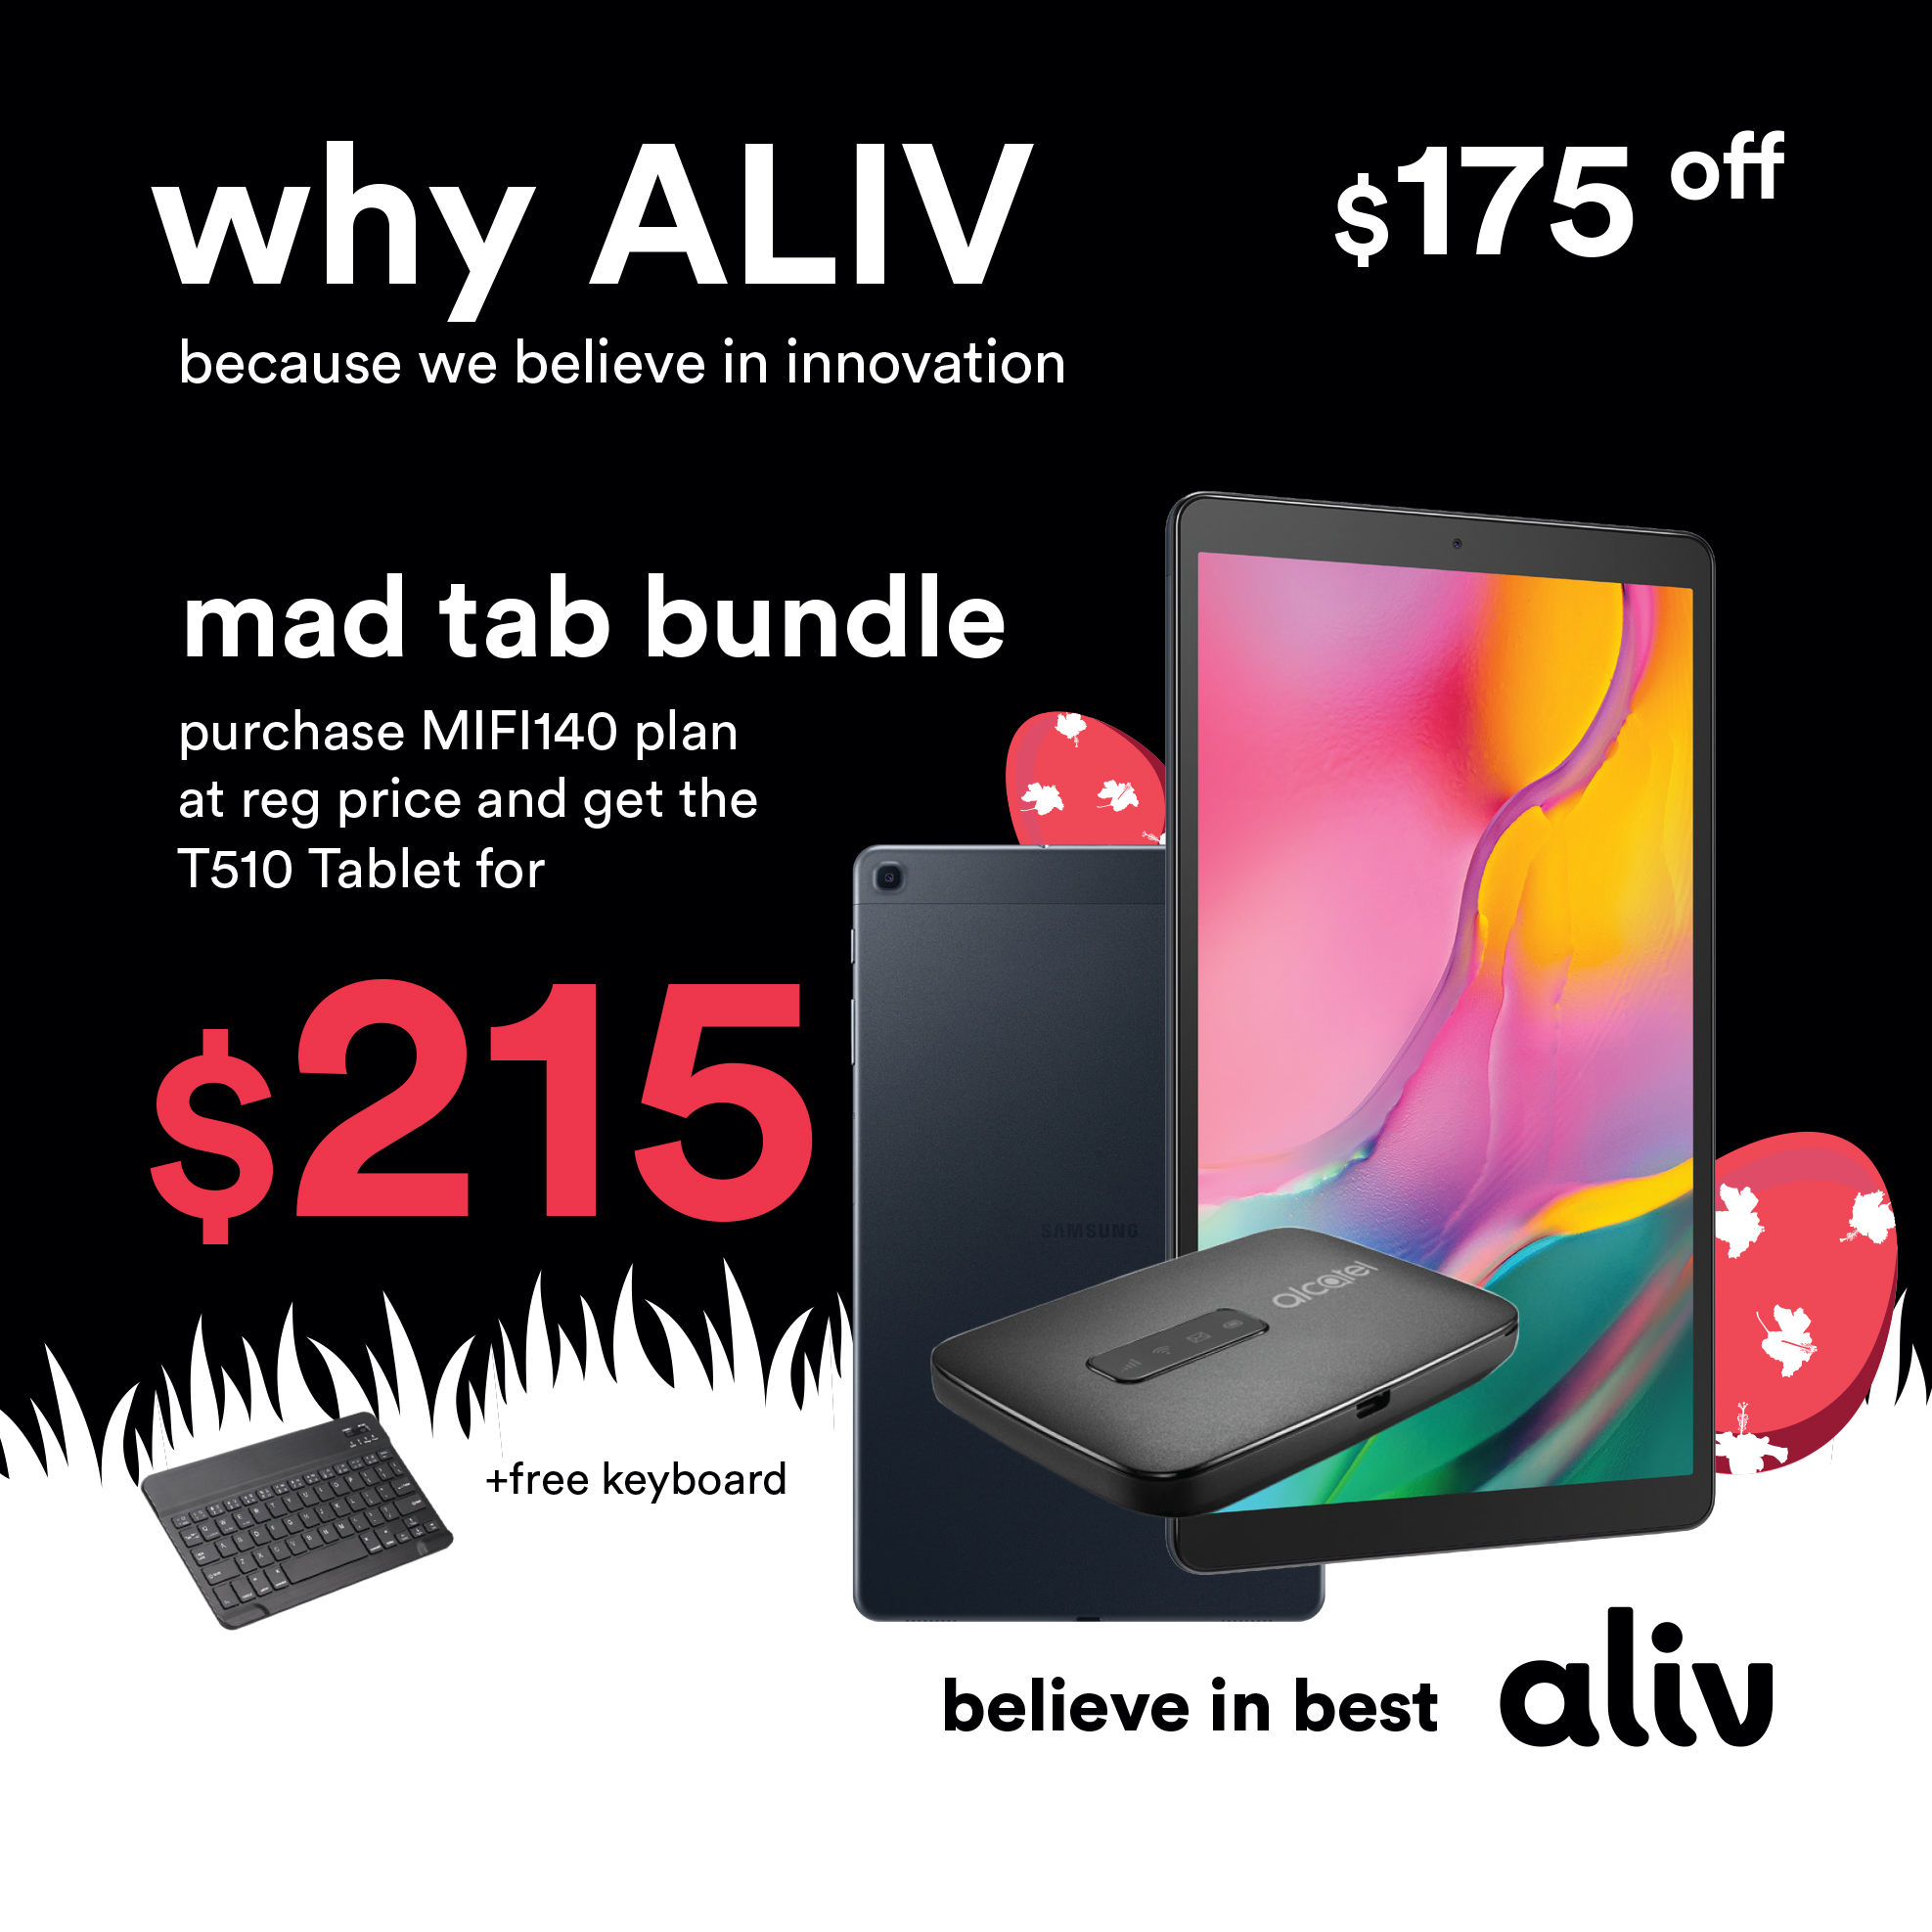 ALIV_April_MIFI_Tablet_Plan_Bundle_02.jpg